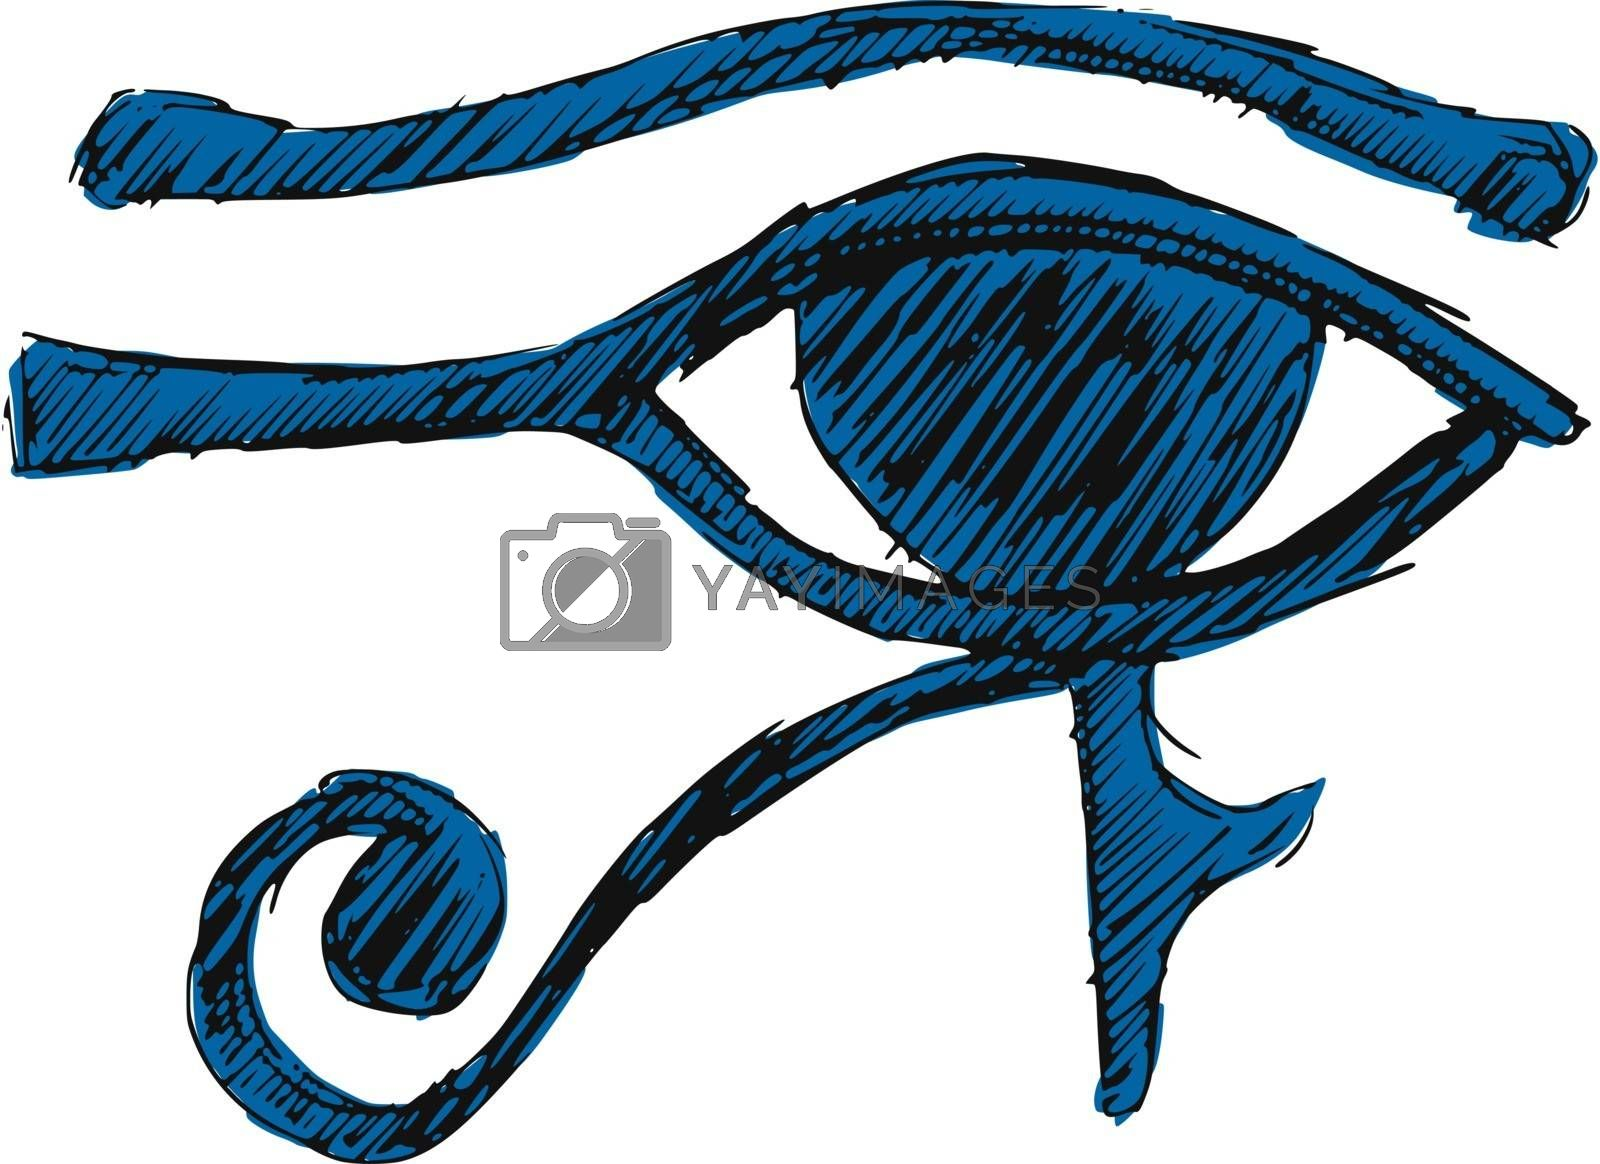 Royalty free image of Eye of Ra by Perysty